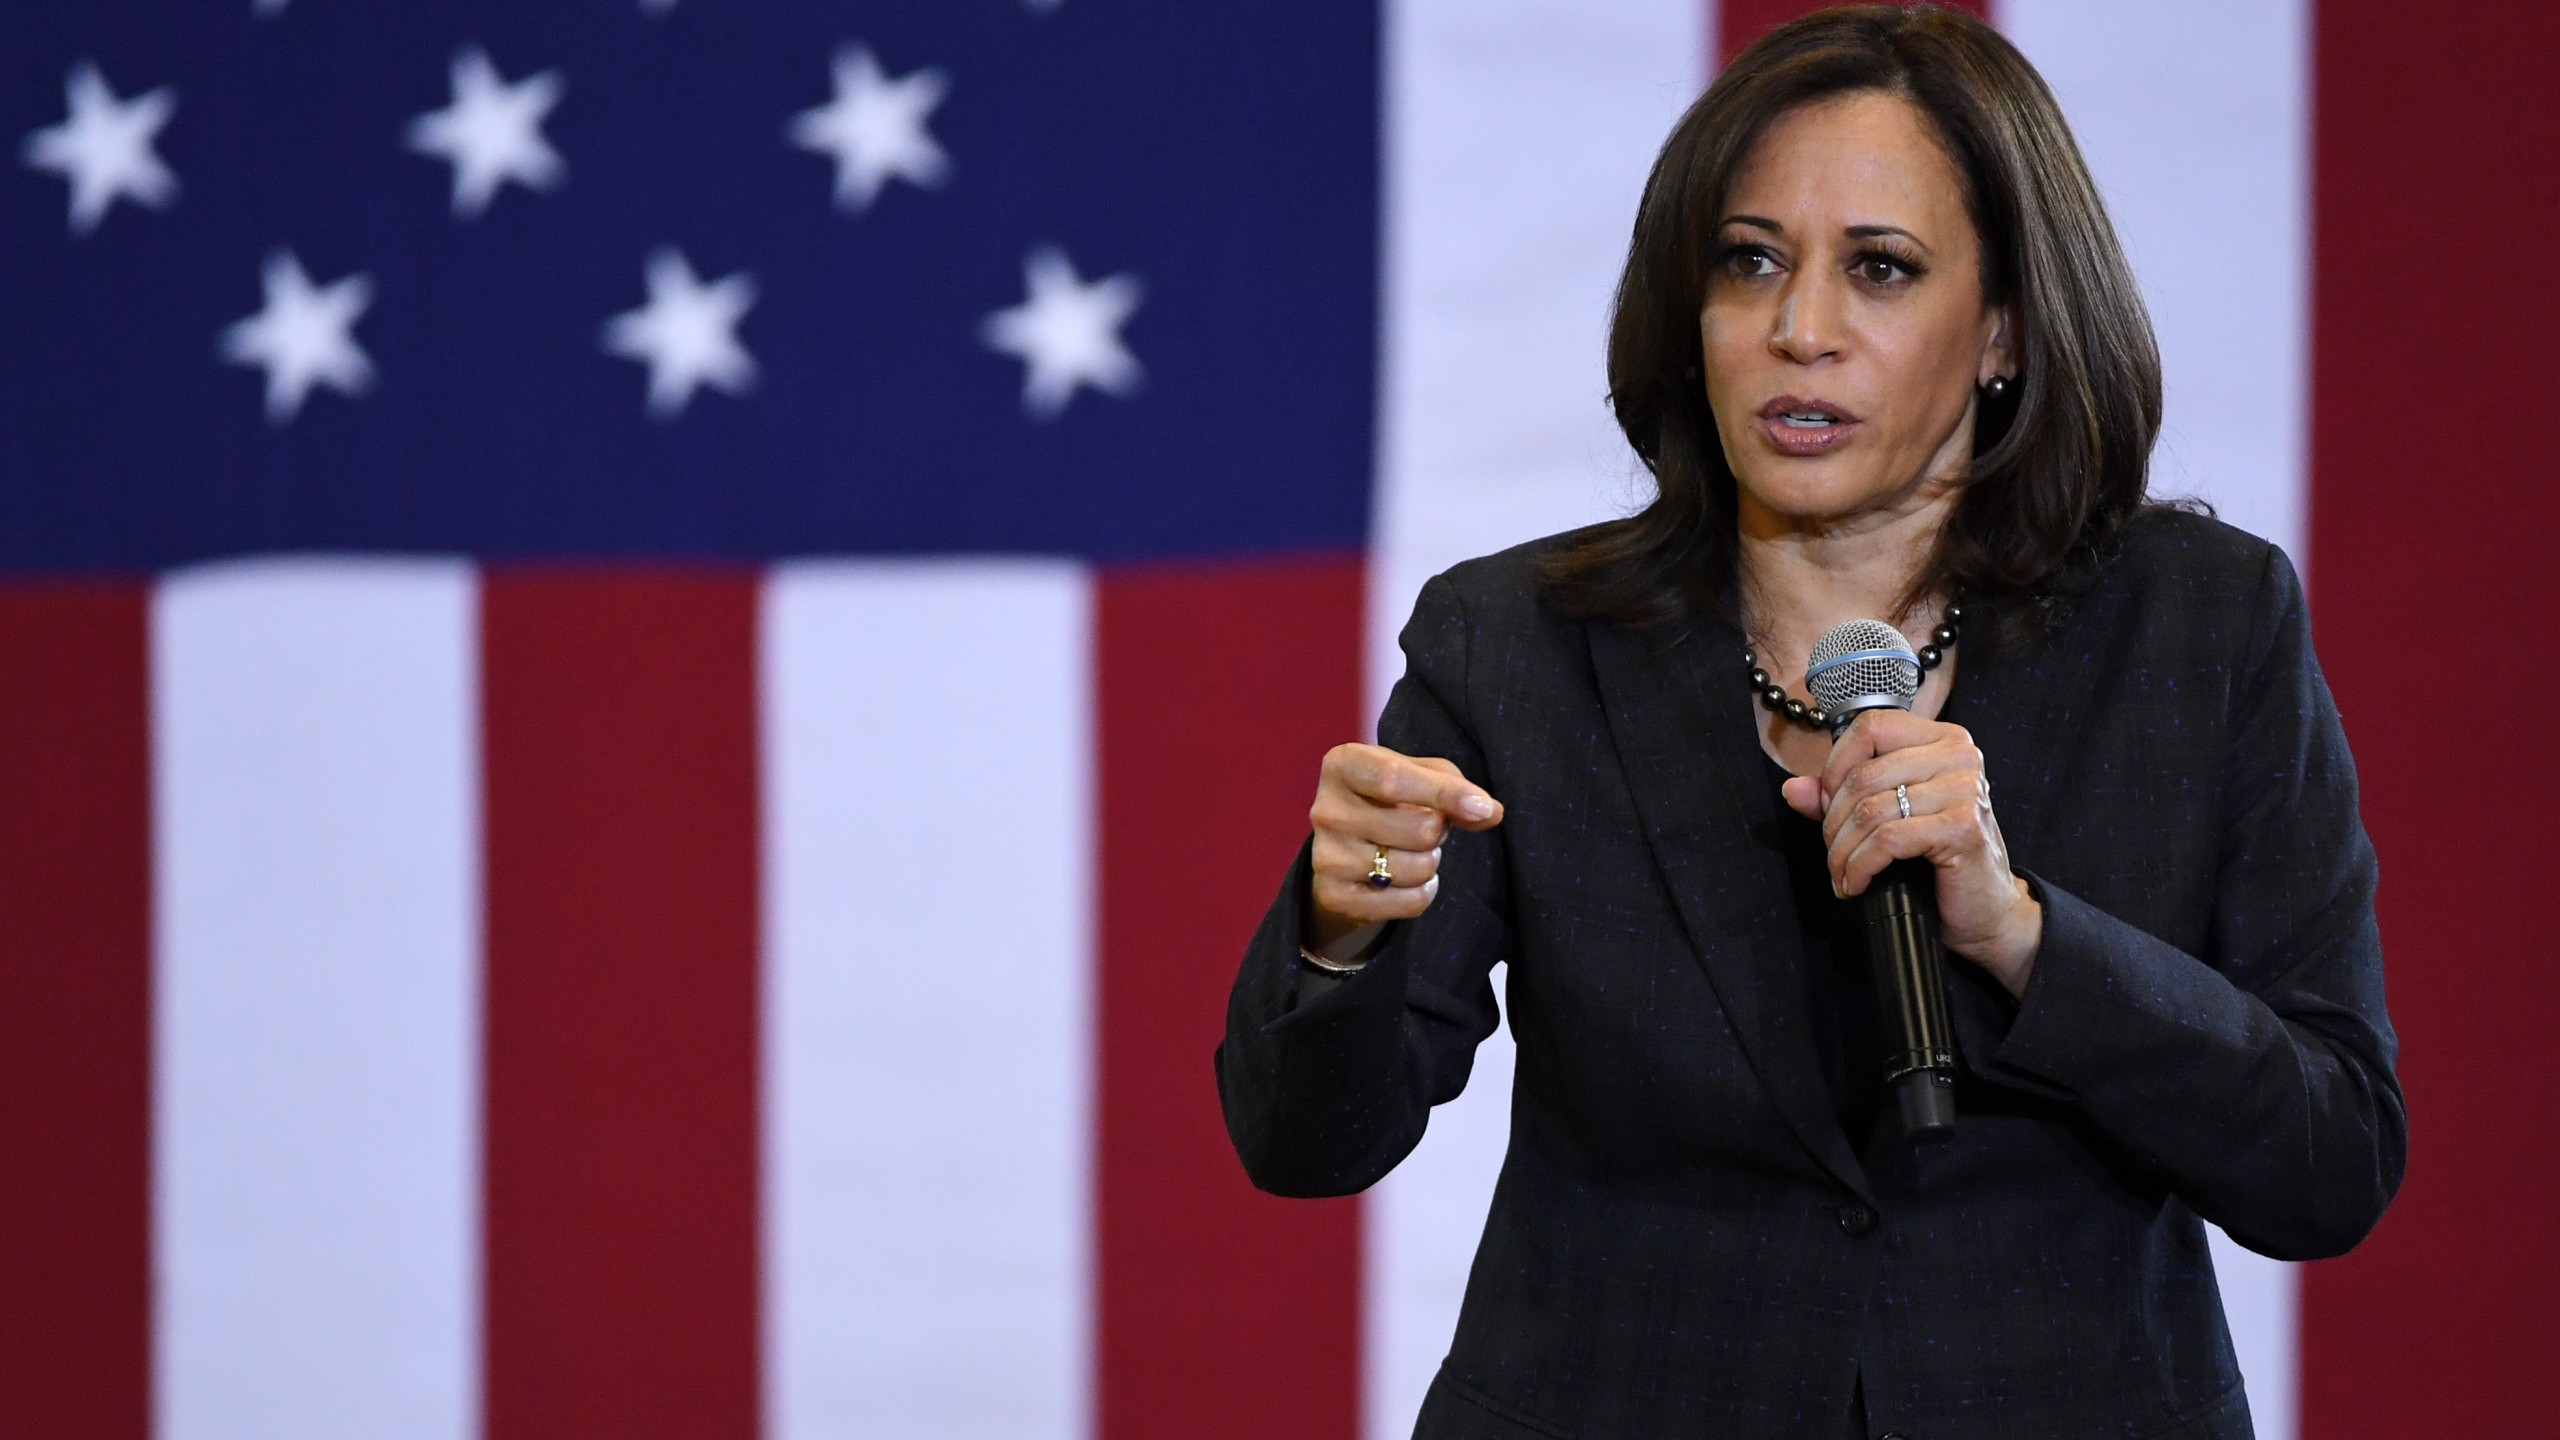 U.S. Sen. Kamala Harris (D-CA) speaks during a town hall meeting at Canyon Springs High School on March 1, 2019 in North Las Vegas. (Credit: Ethan Miller/Getty Images)